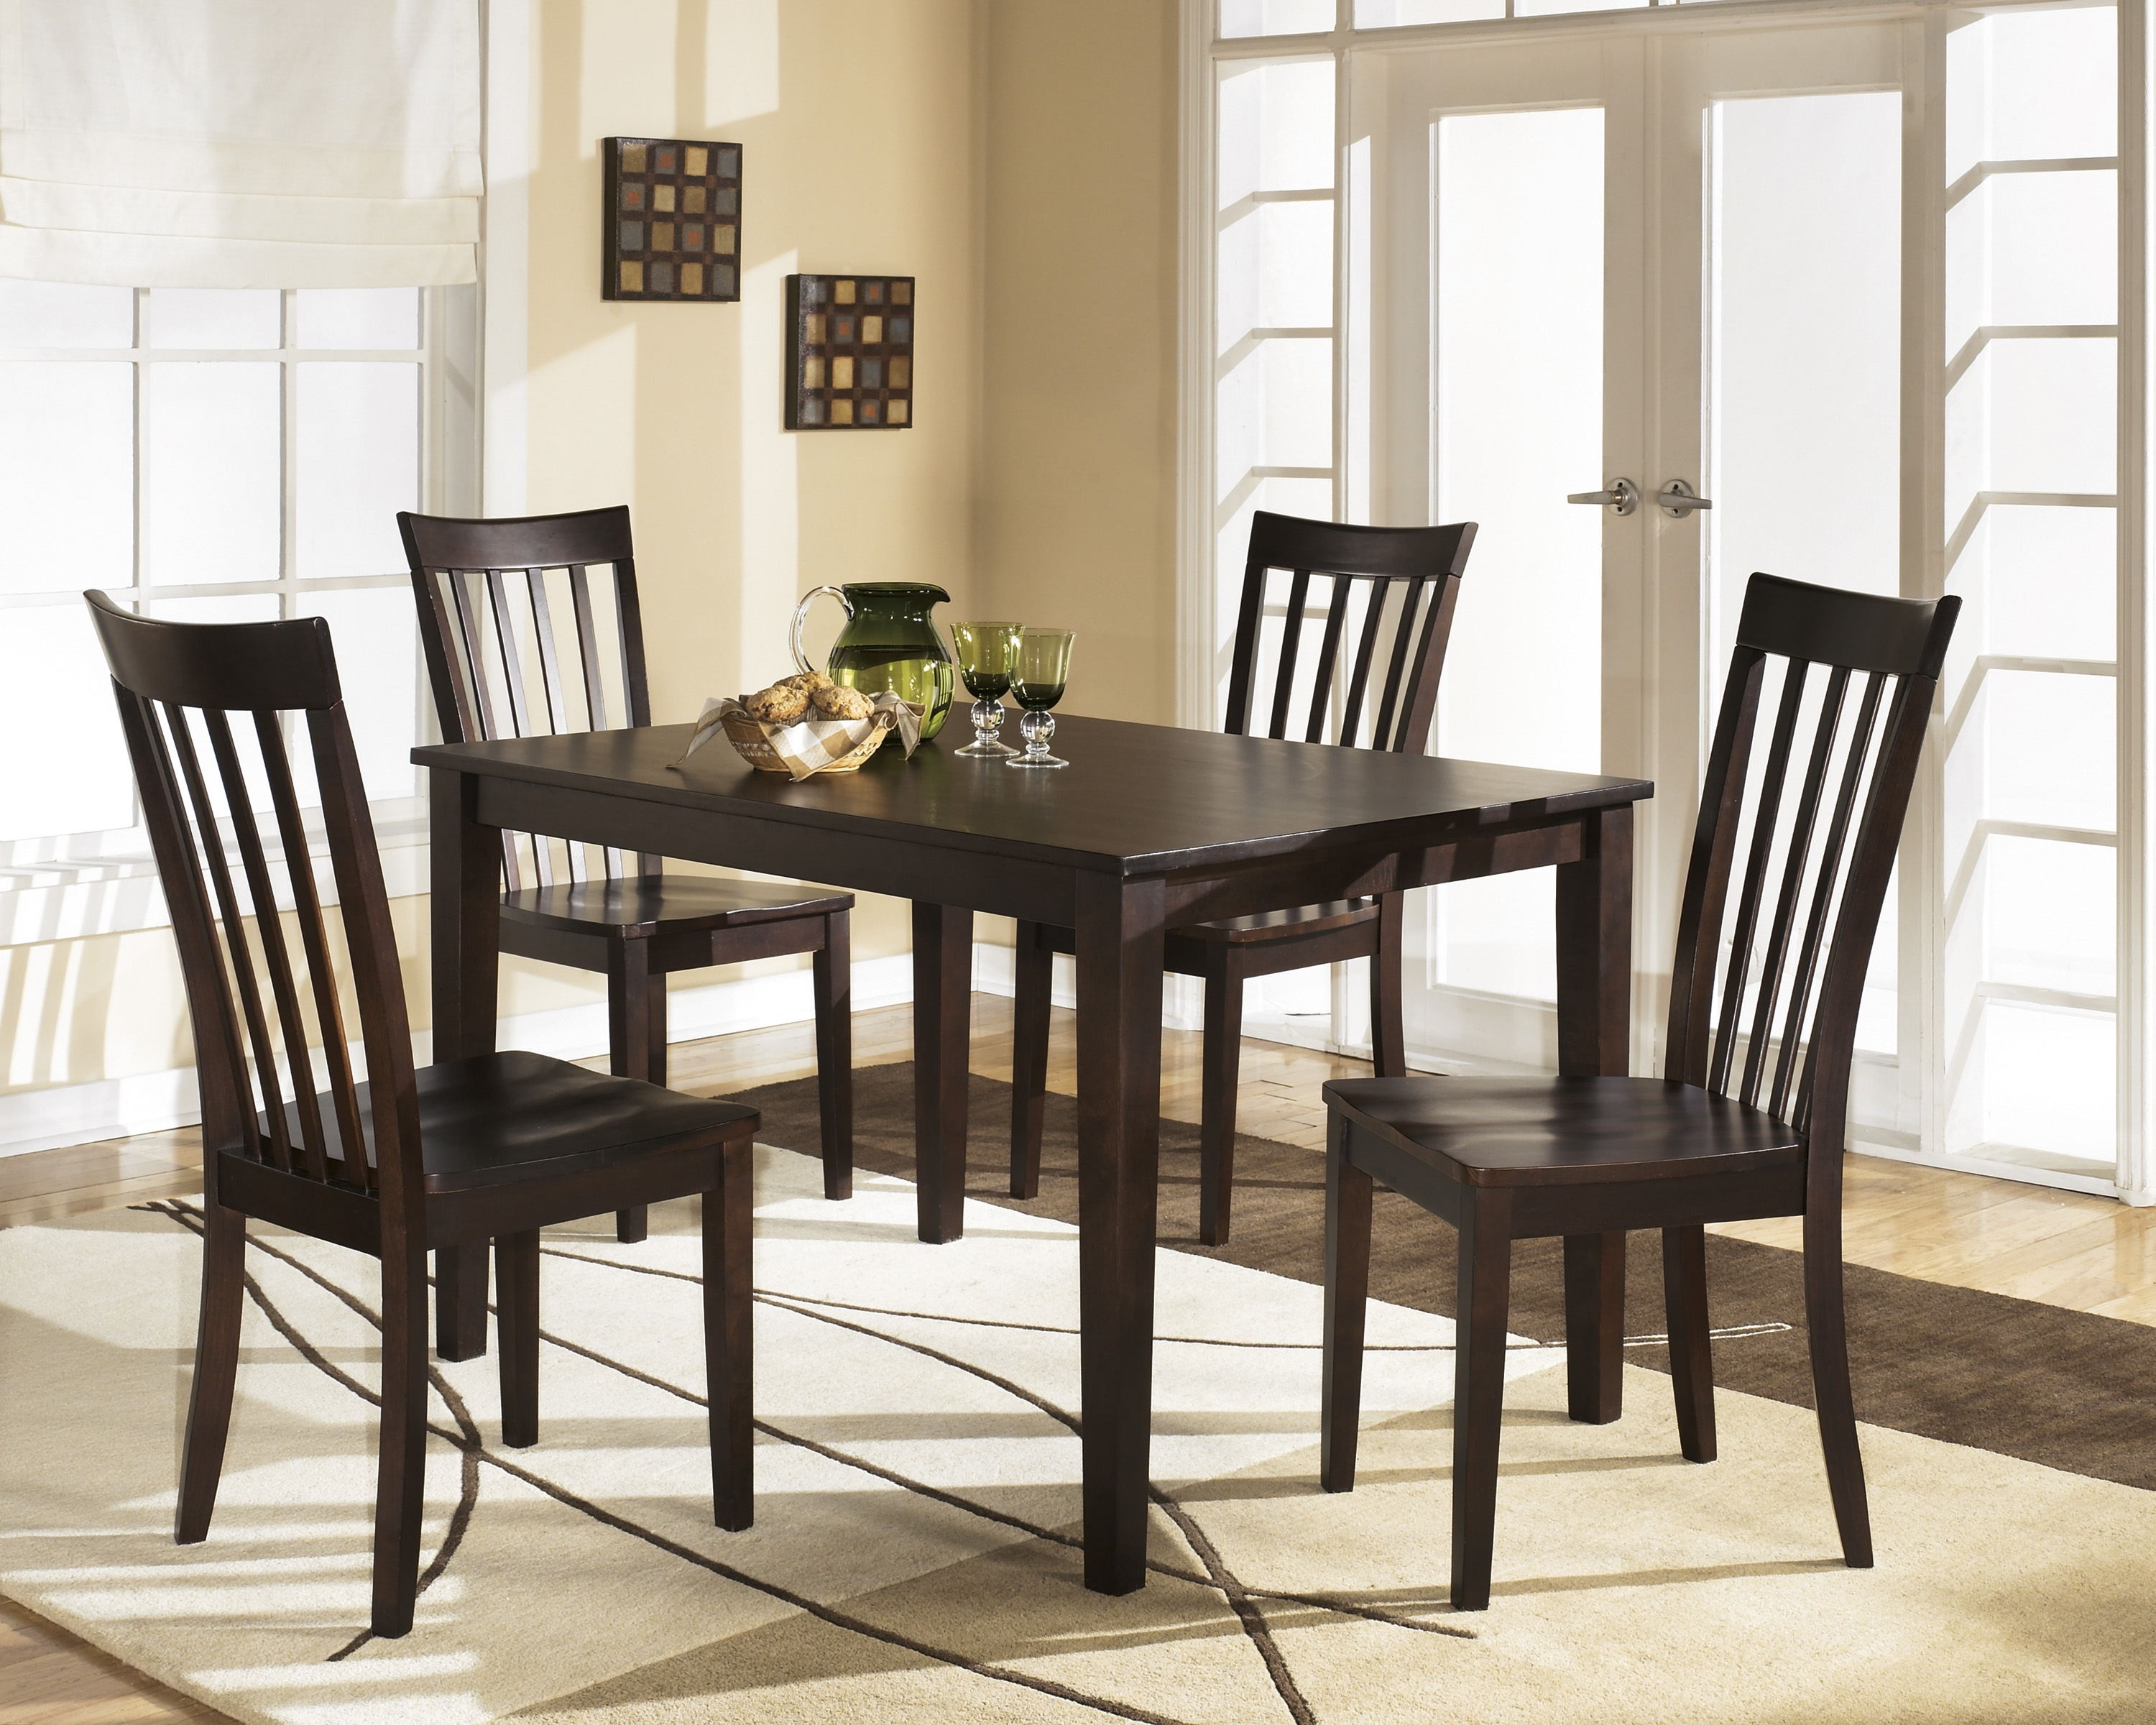 Most Popular Caira 9 Piece Extension Dining Sets With Diamond Back Chairs Pertaining To Https://www.localfurnitureoutlet/mattresses (View 22 of 25)